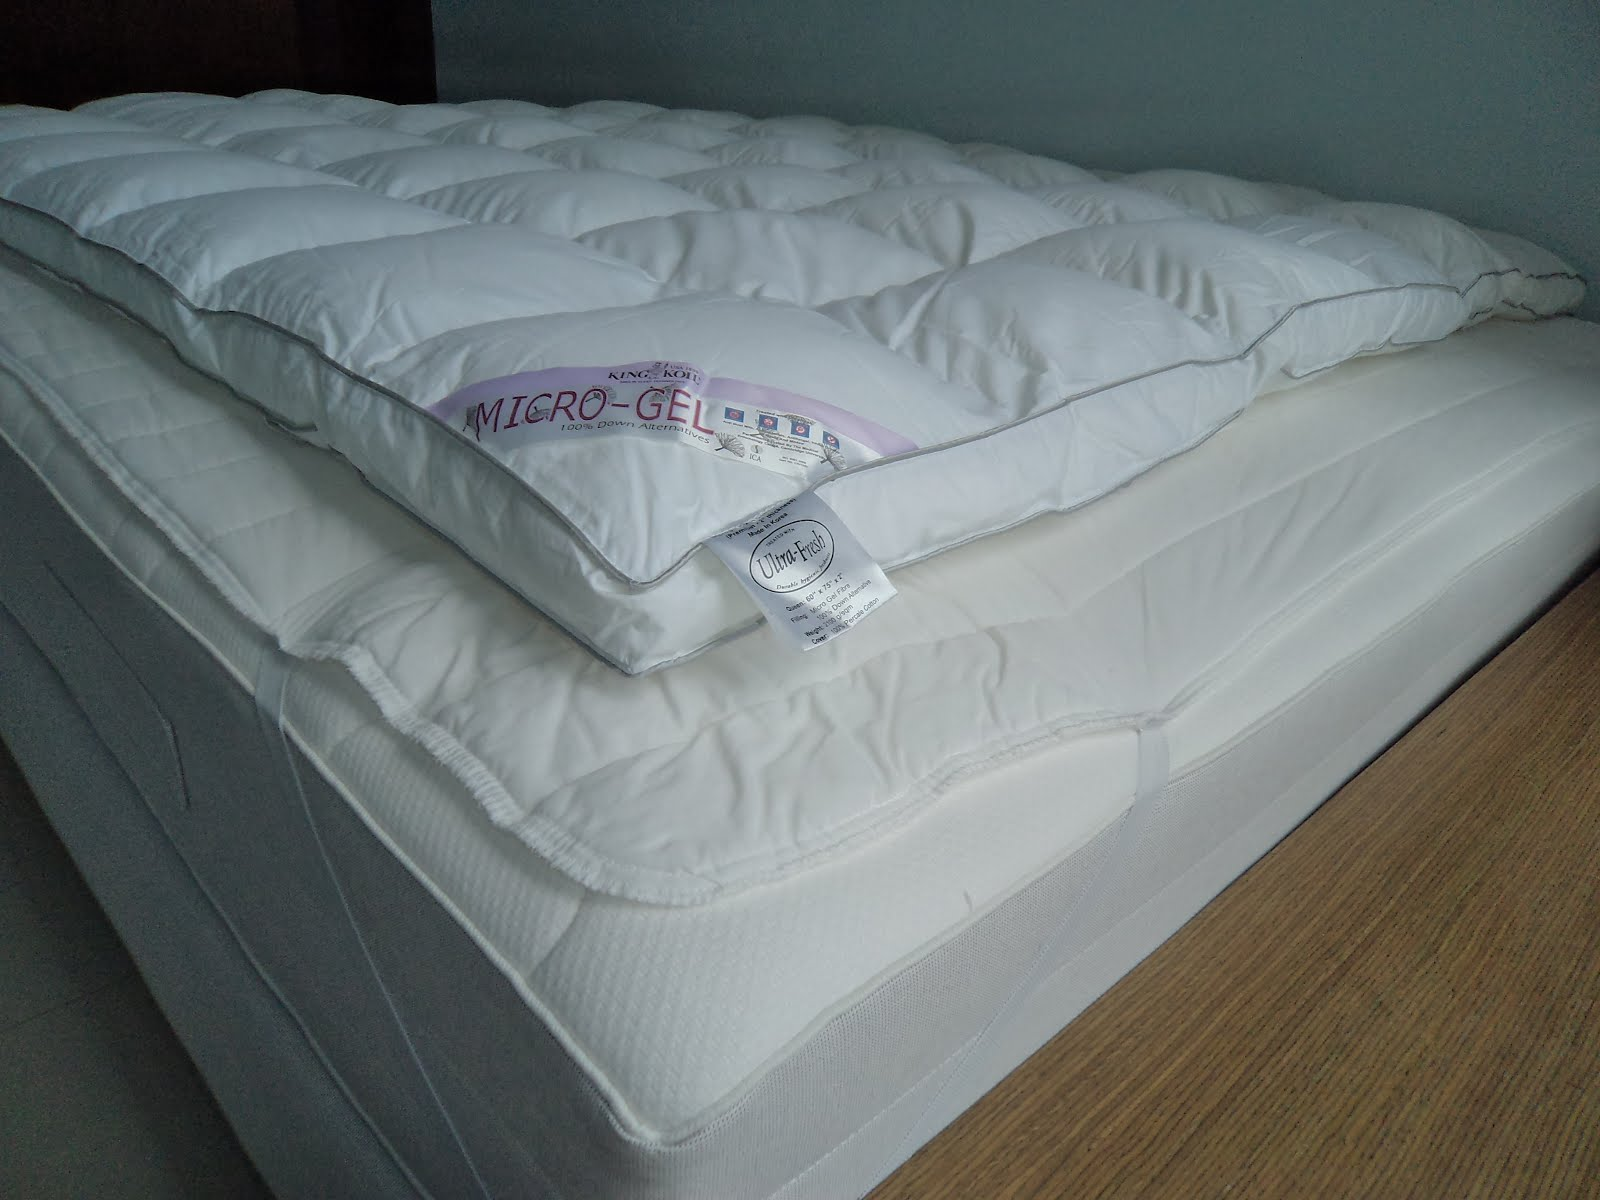 Through A Bit Of Research Online I Found That It Is The Mattress Topper Makes Bed Very Soft As One Person Posted Like Sleeping On Cloud